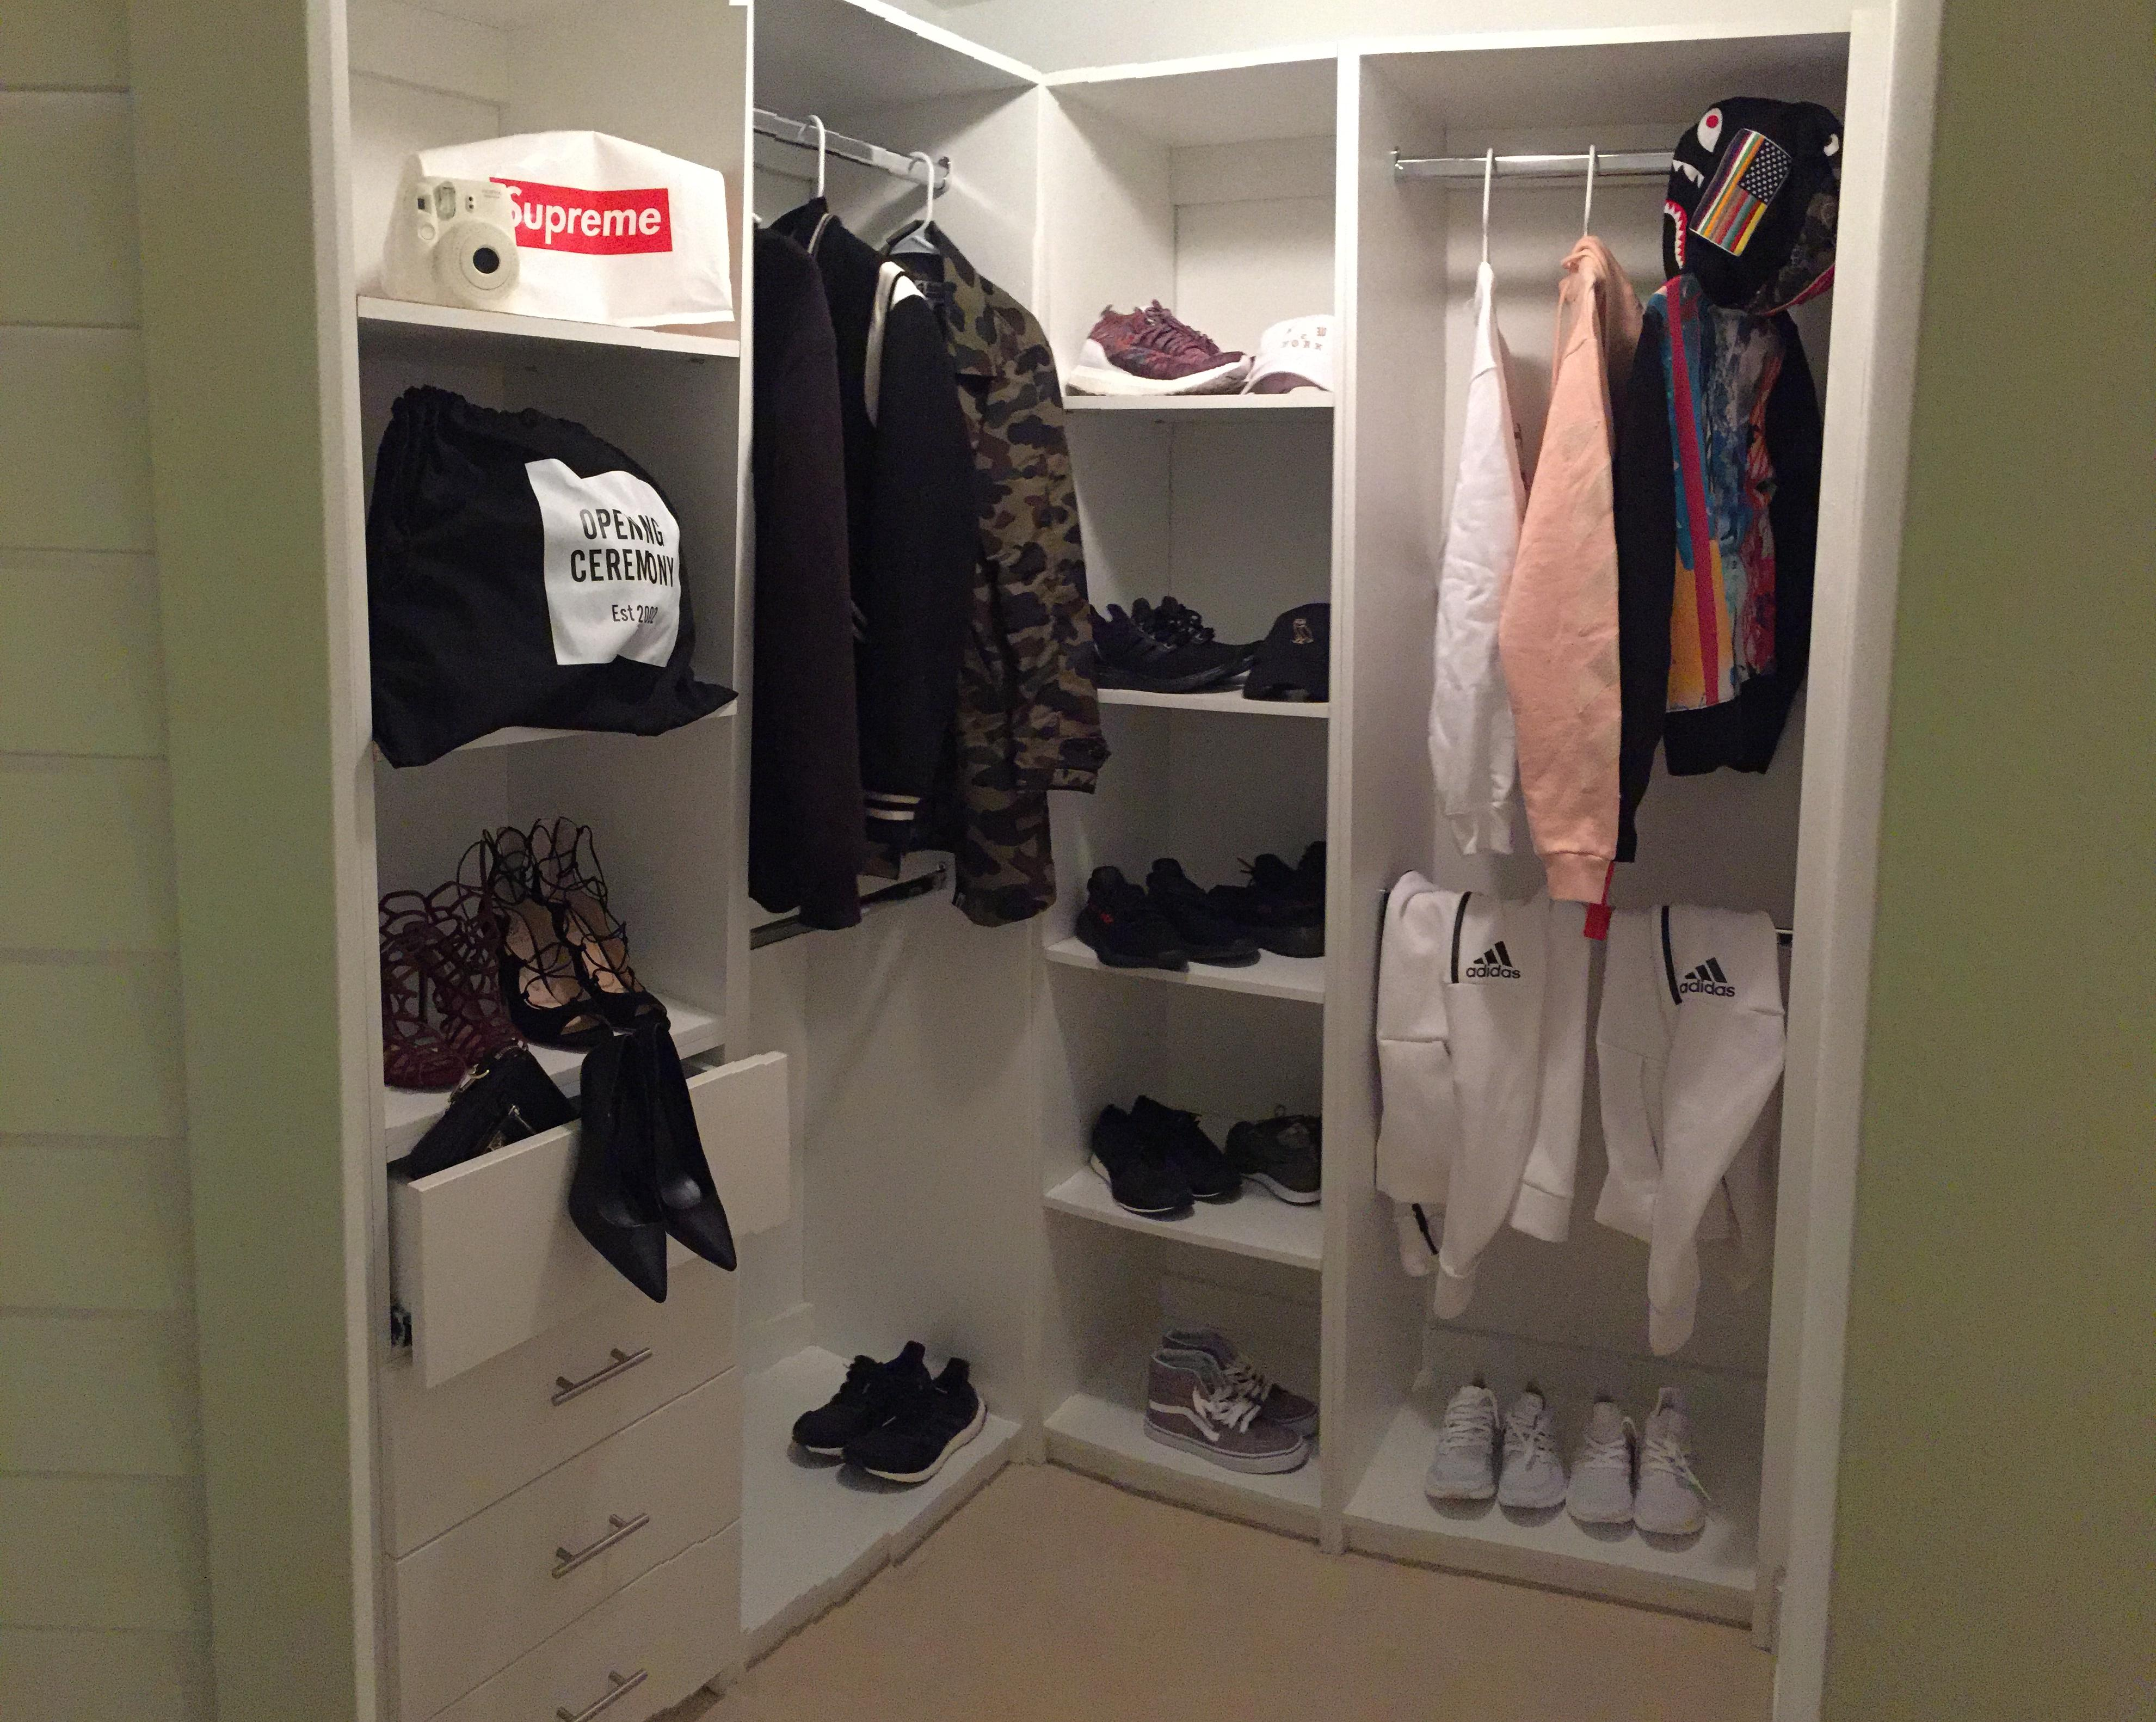 Hers and Hers closet